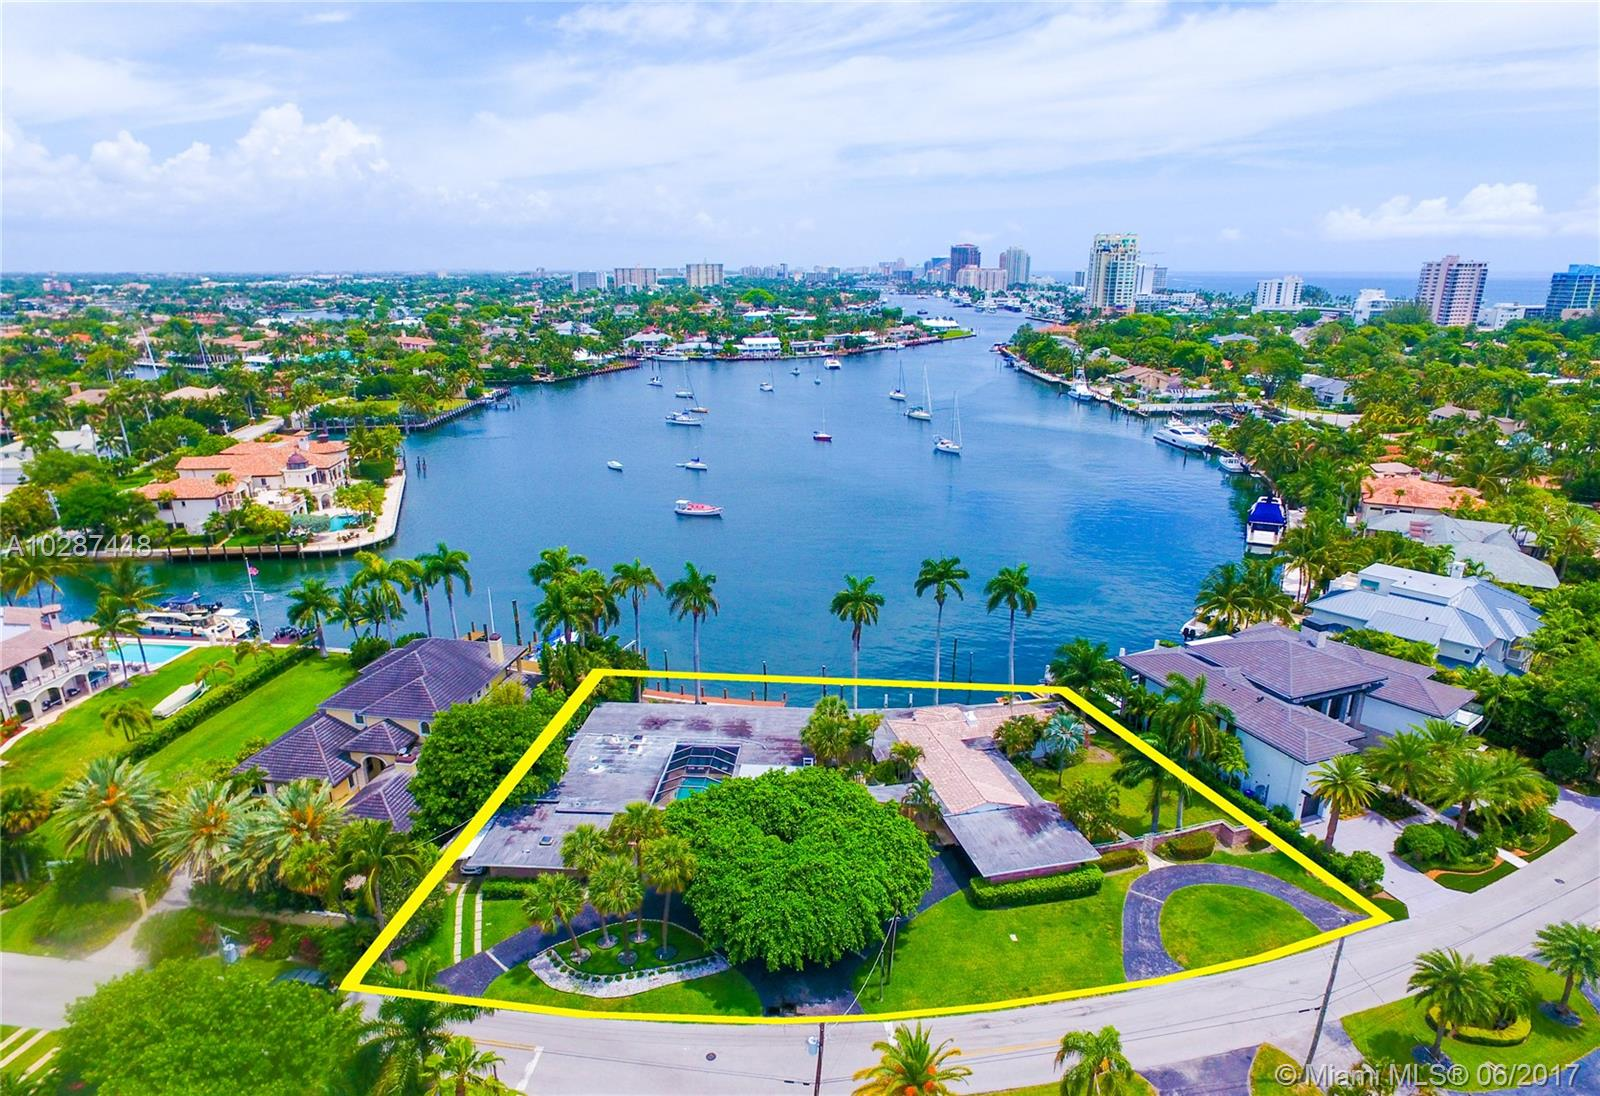 1627 E Lake Dr - Fort Lauderdale, Florida